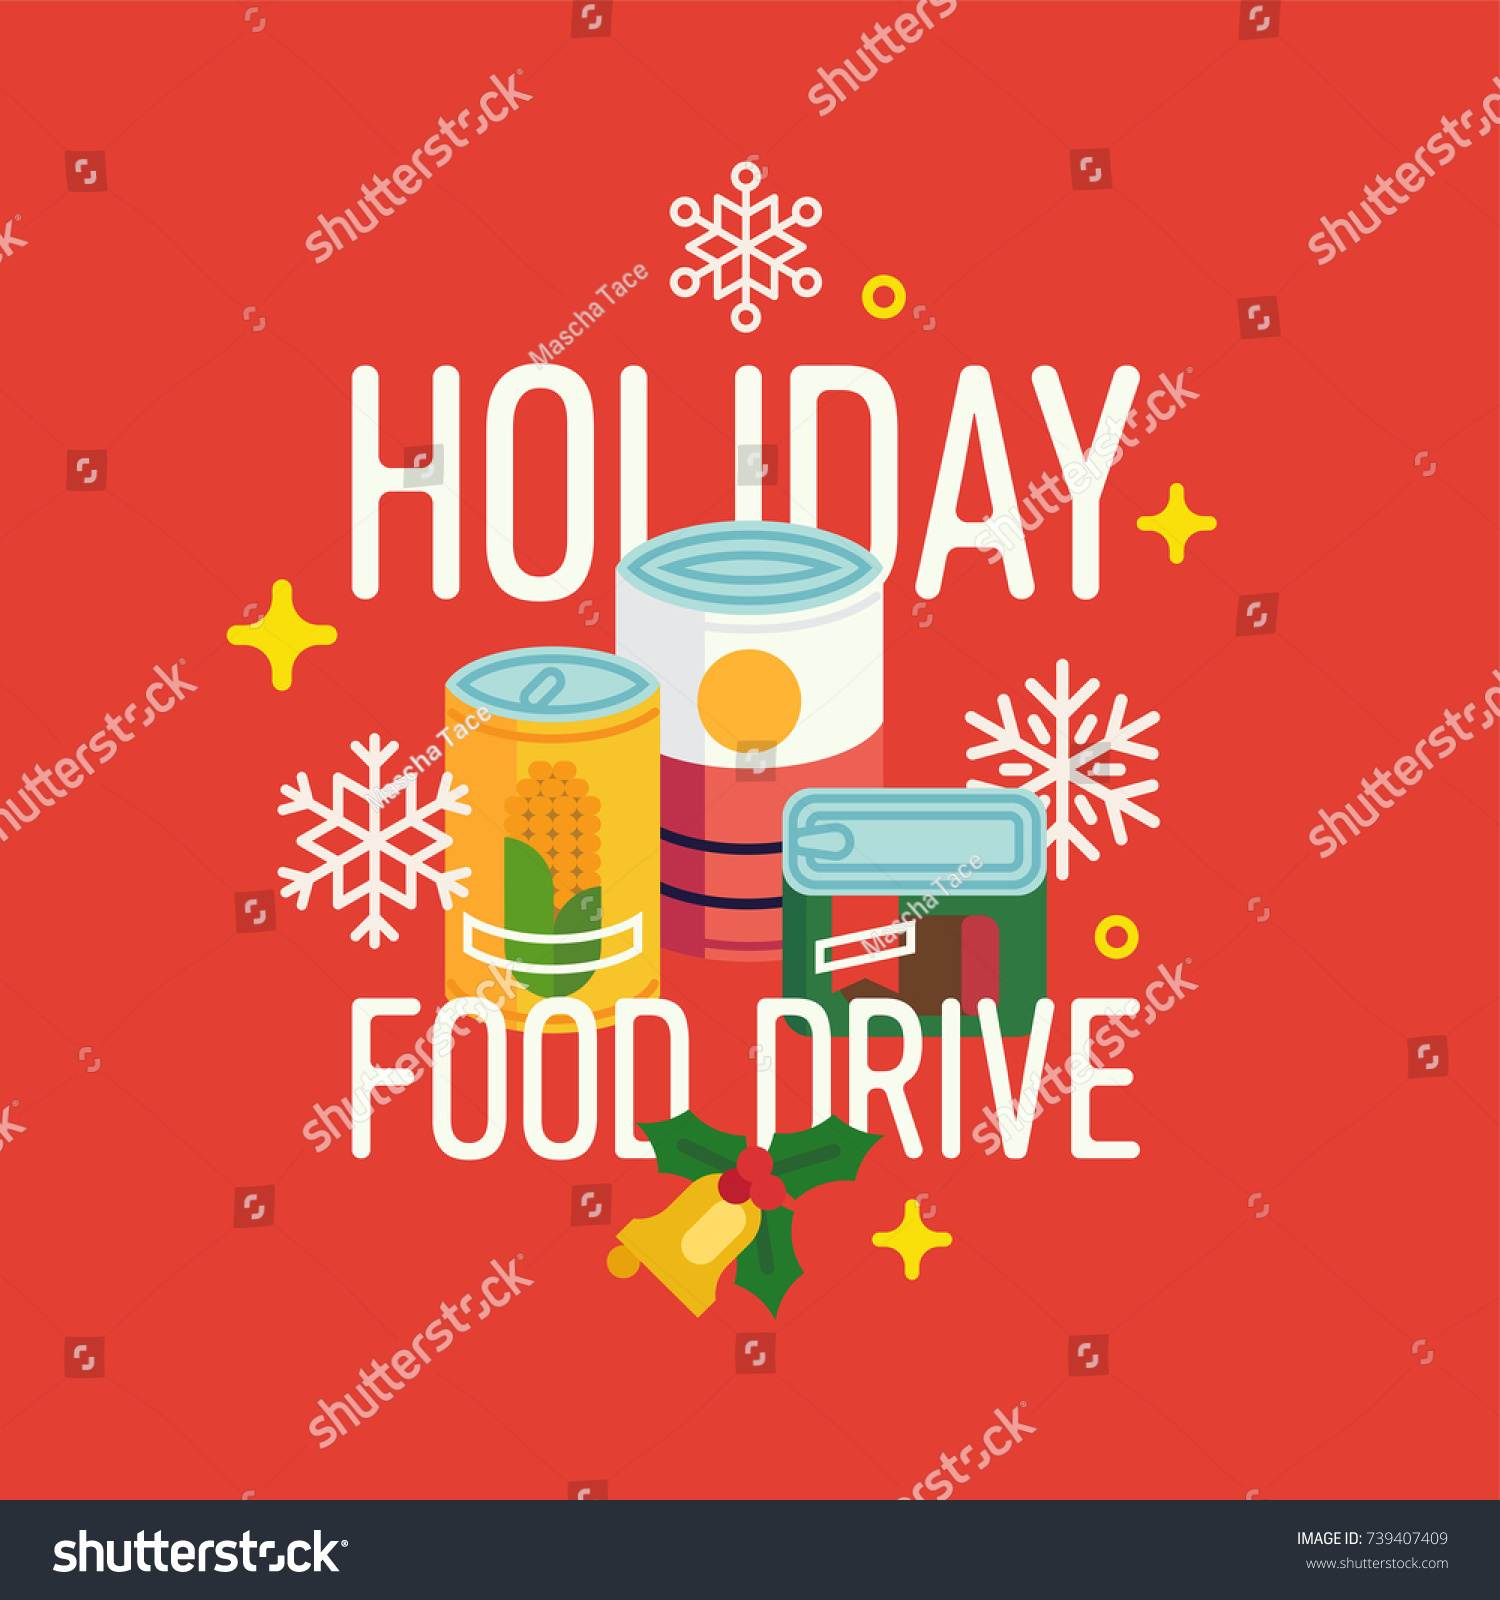 Holiday food drive vector concept illustration. Winter season charity food bank themed poster or banner design